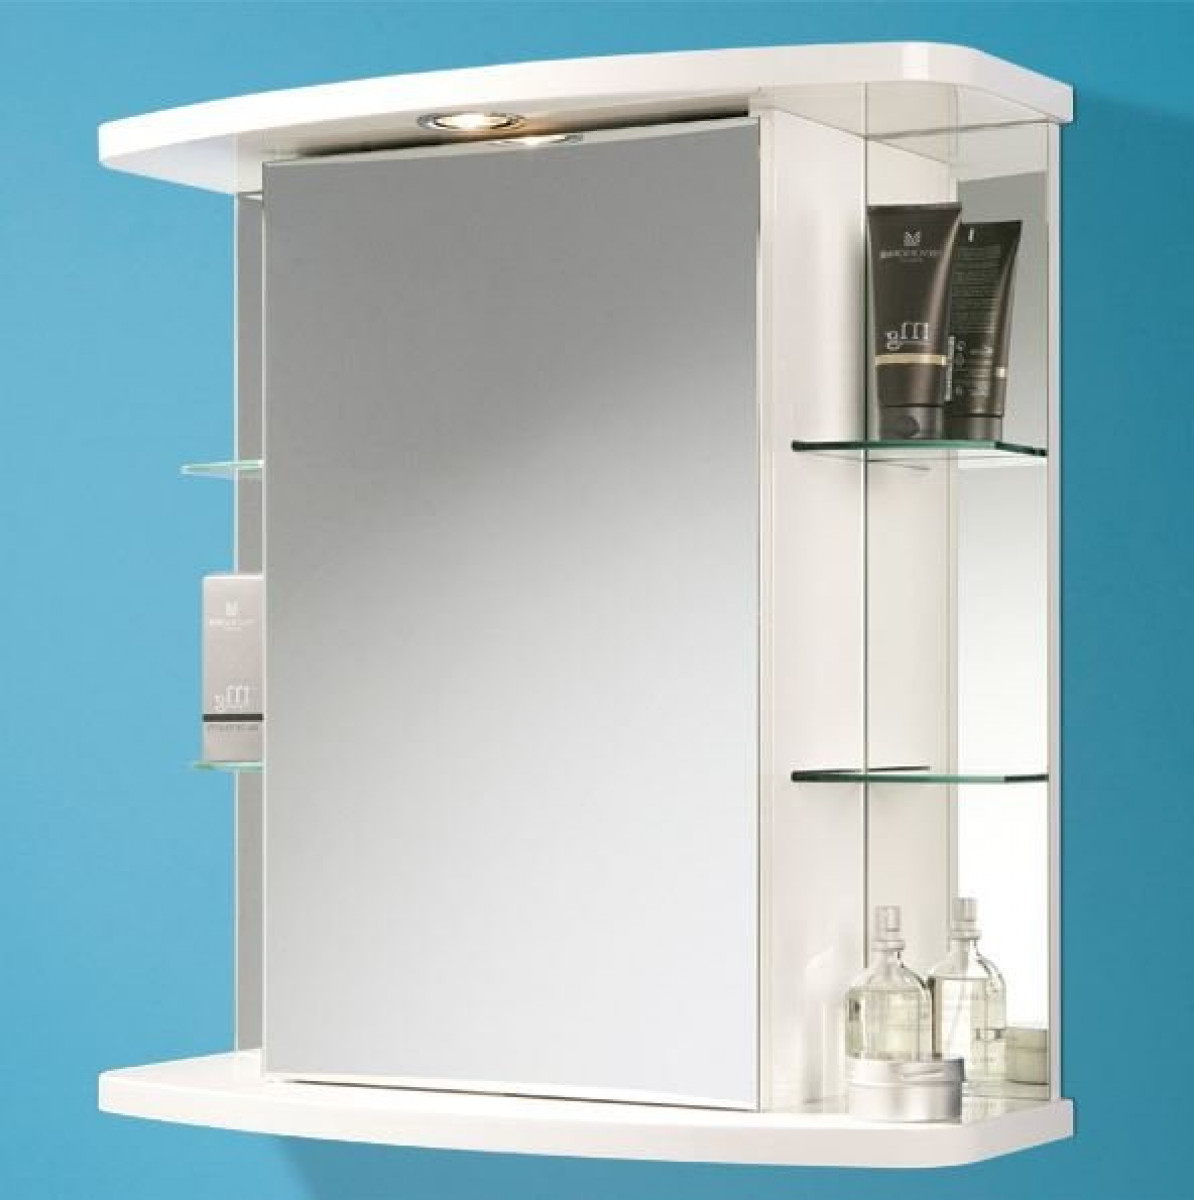 Hib Vera Illuminated Bathroom Cabinet With Shaver Socket